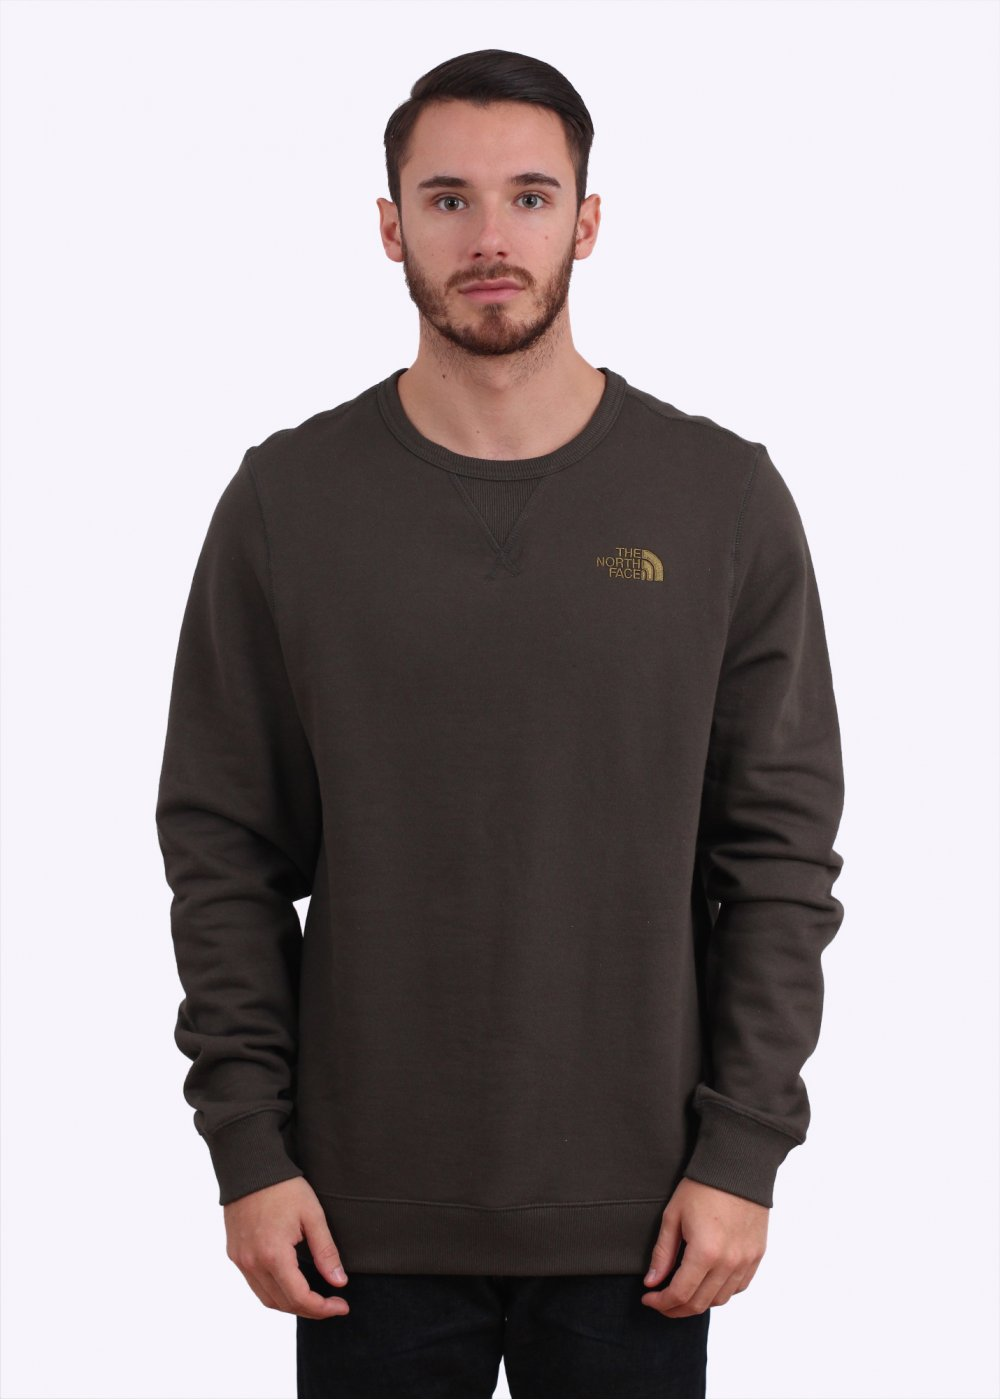 eb241856d The North Face Street Fleece Pullover Sweater - Black Ink Green